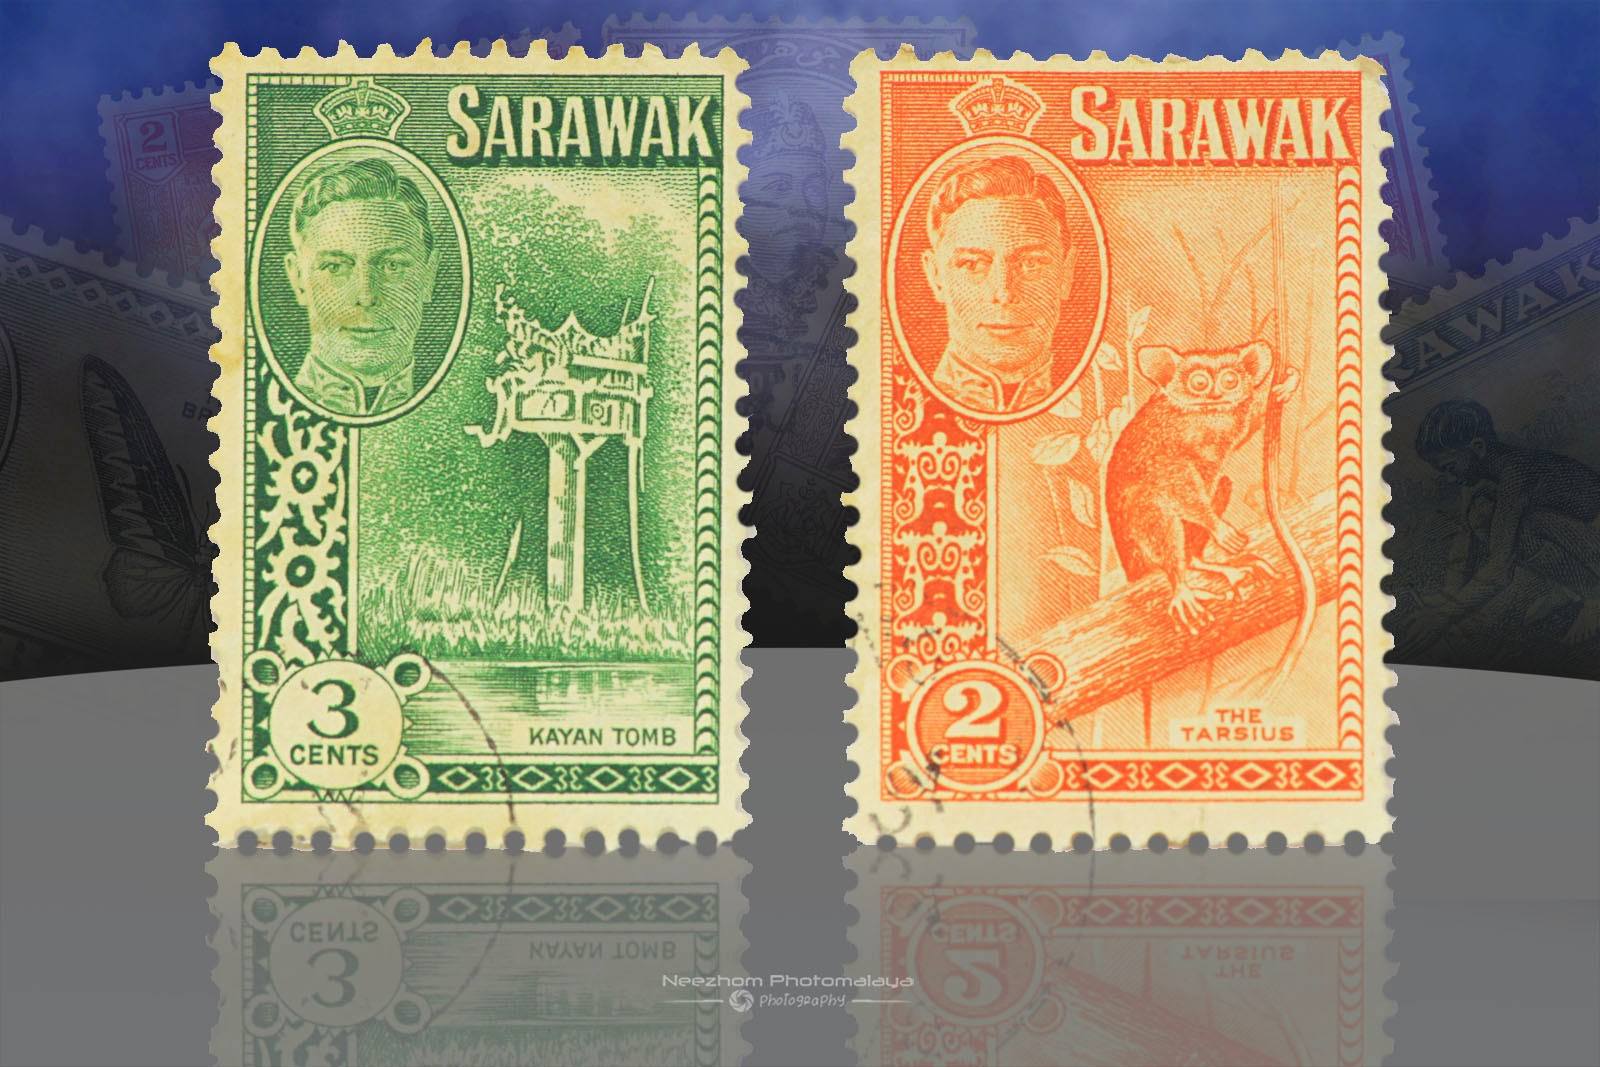 Setem Sarawak 3 Cents Kayan Tomb, 2 Cents The Tarsius 1950